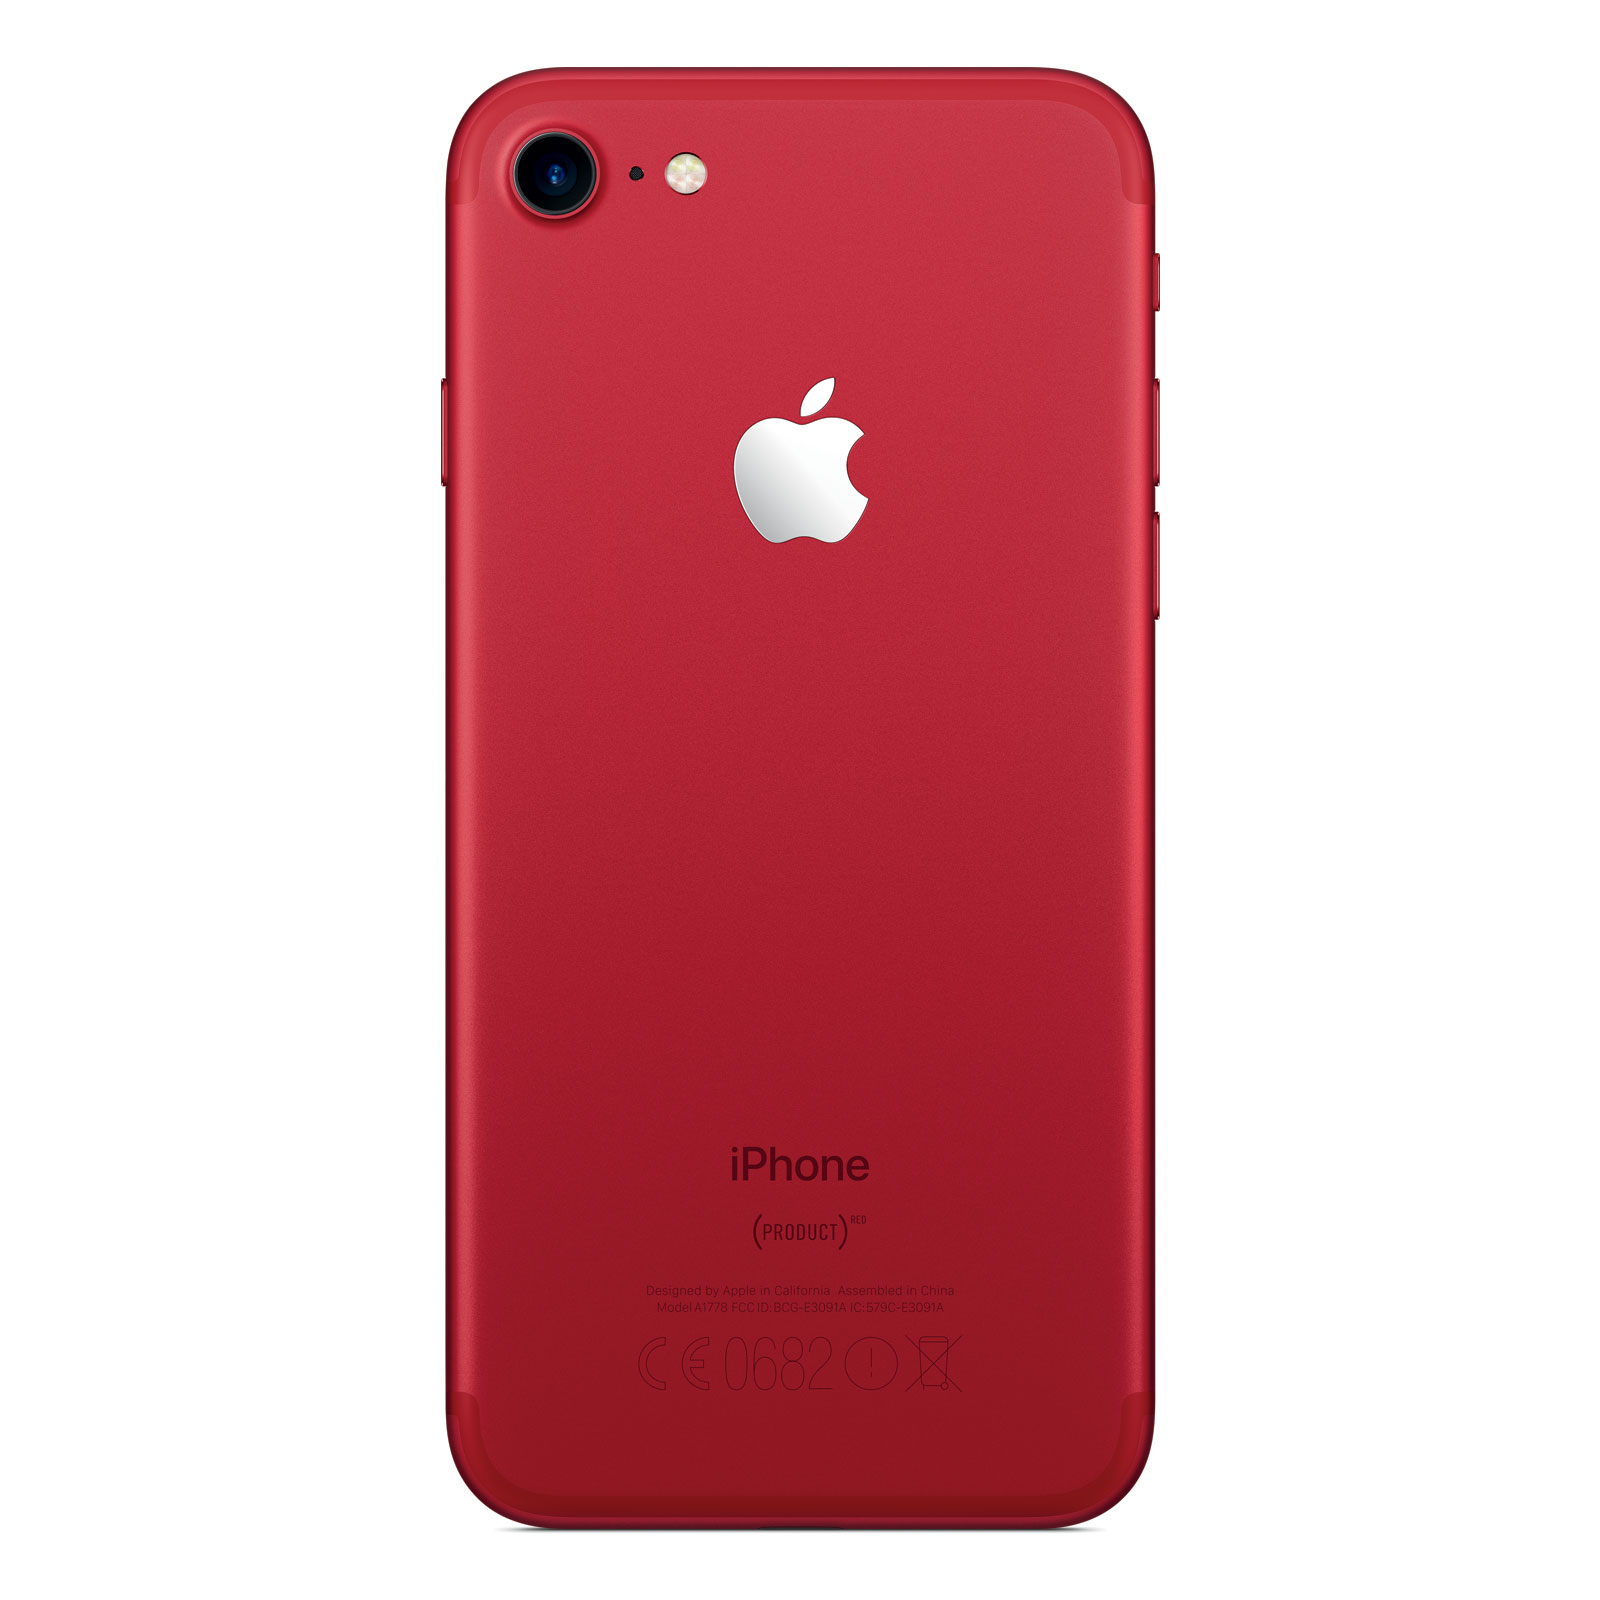 apple iphone 7 128 go rouge special edition mobile smartphone apple sur ldlc. Black Bedroom Furniture Sets. Home Design Ideas